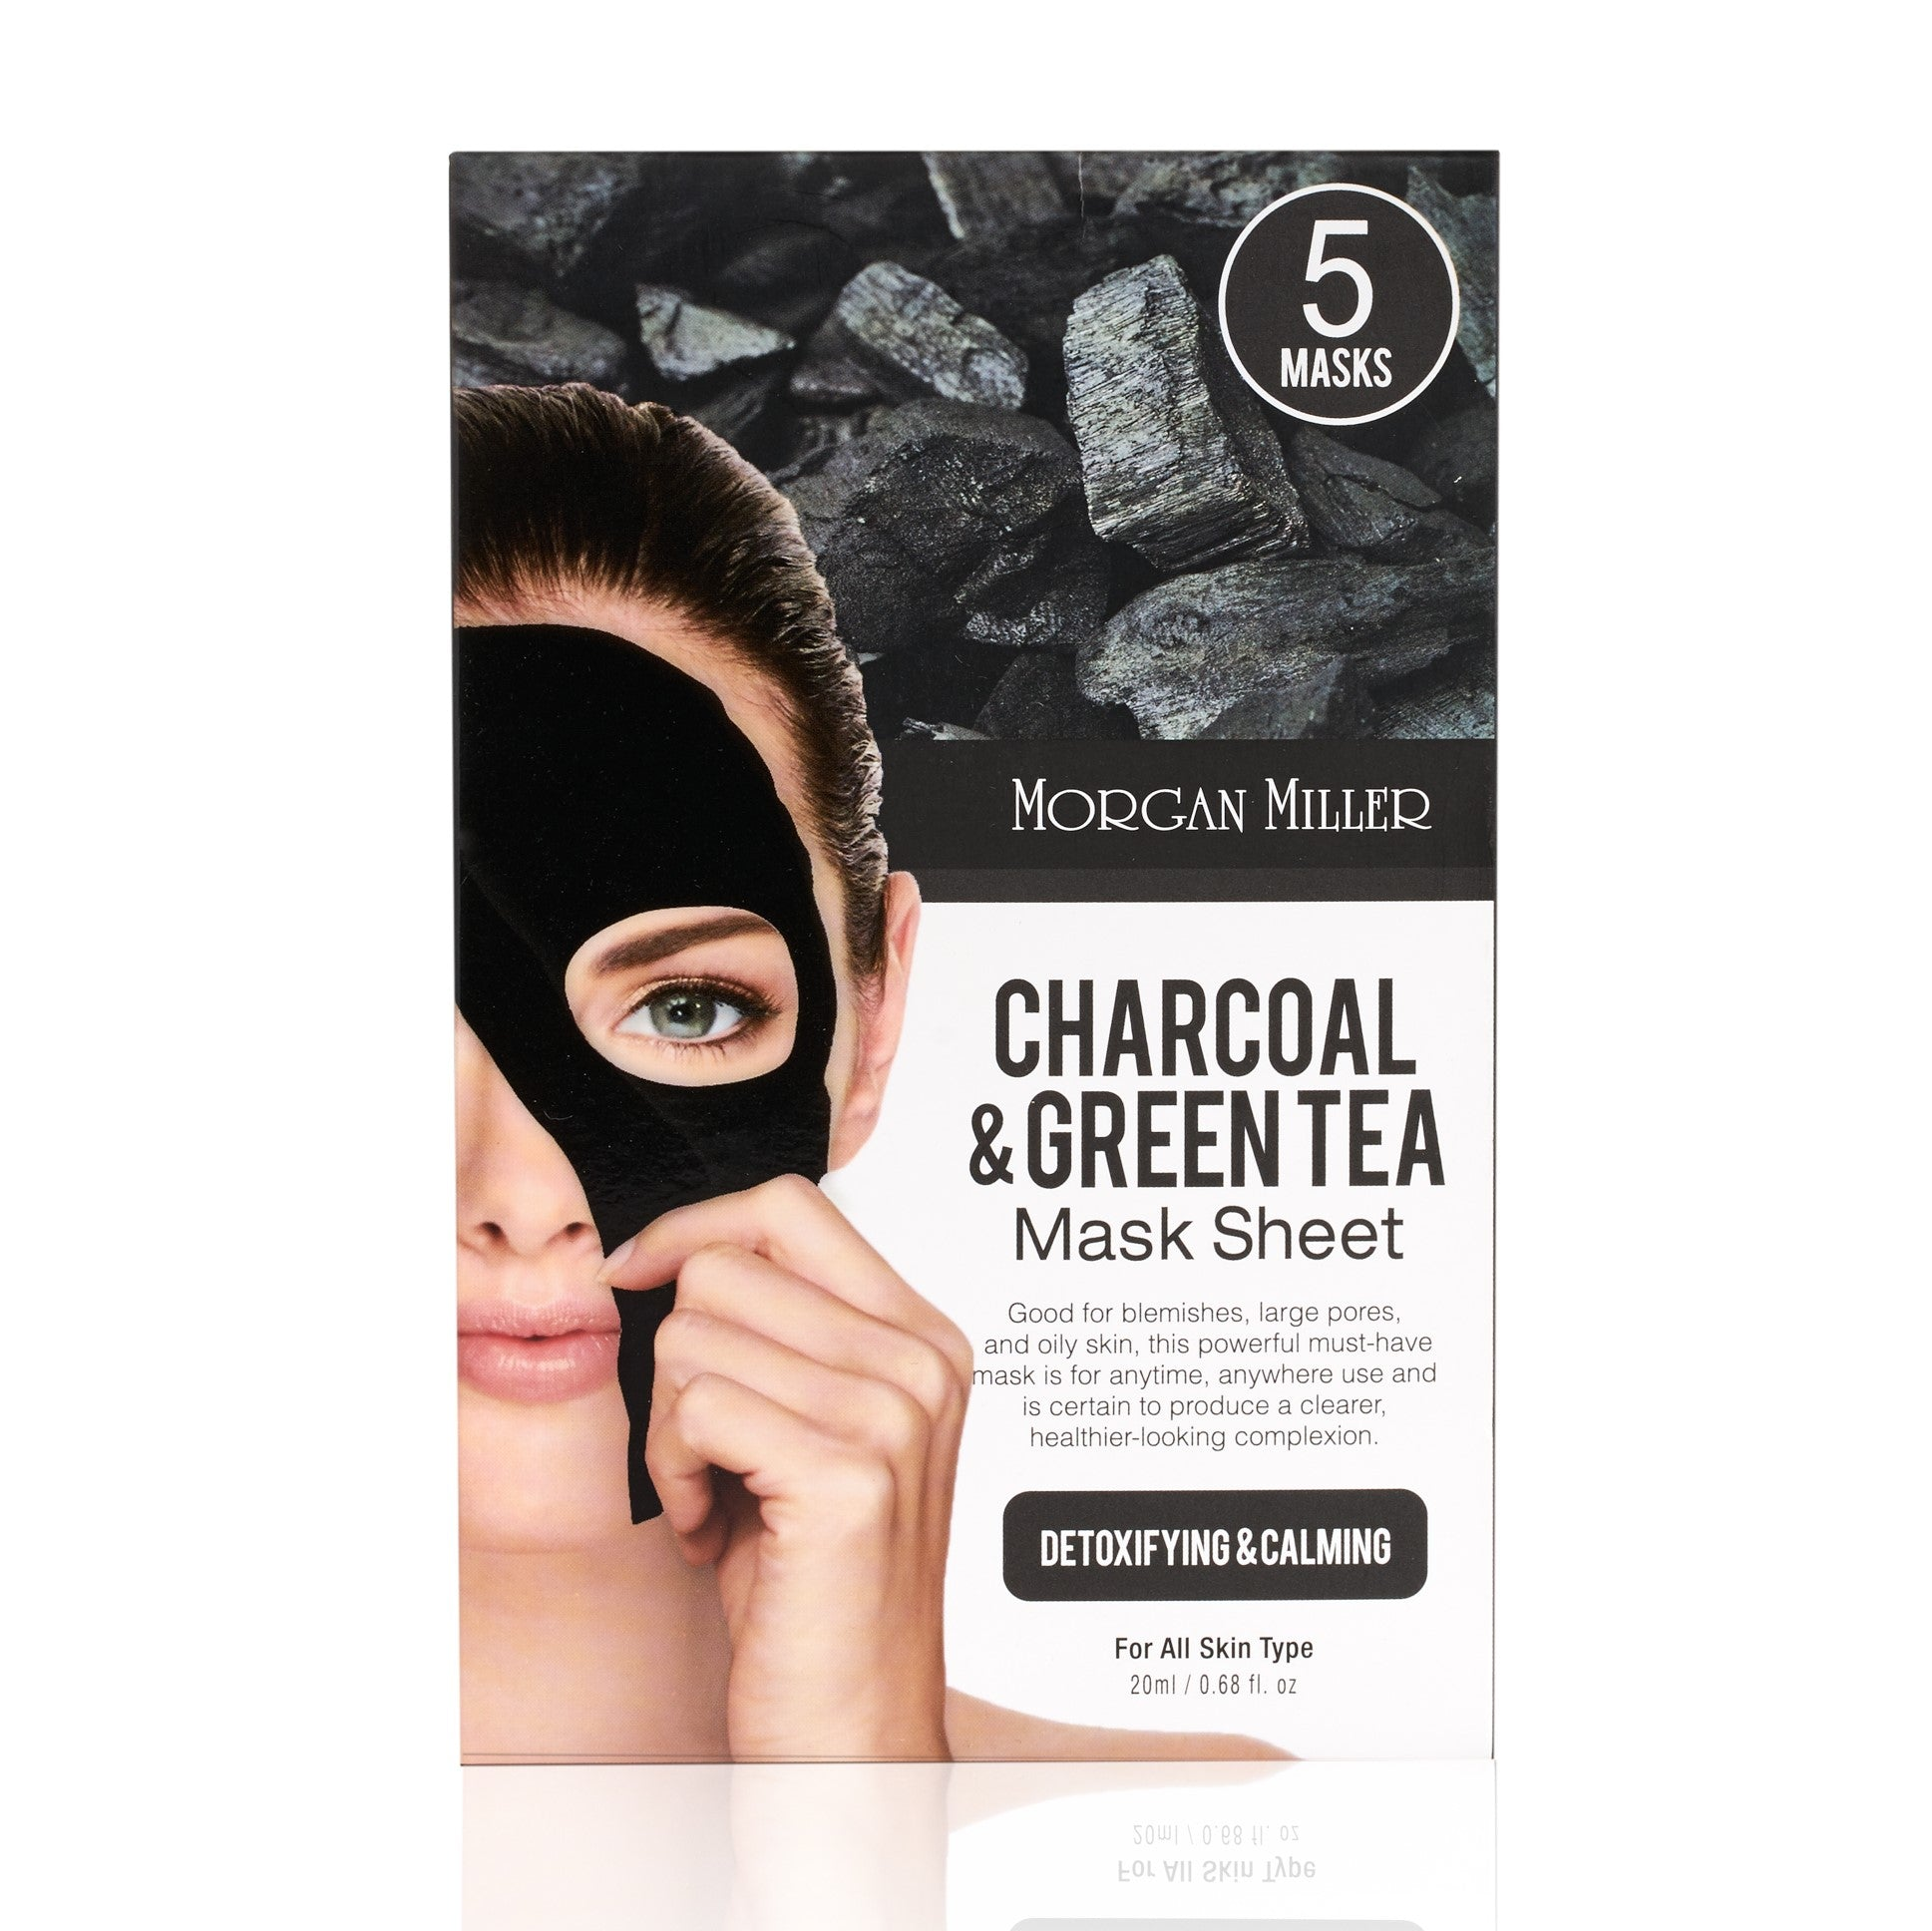 Morgan Miller Charcoal & Green Tea Sheet Mask packaging